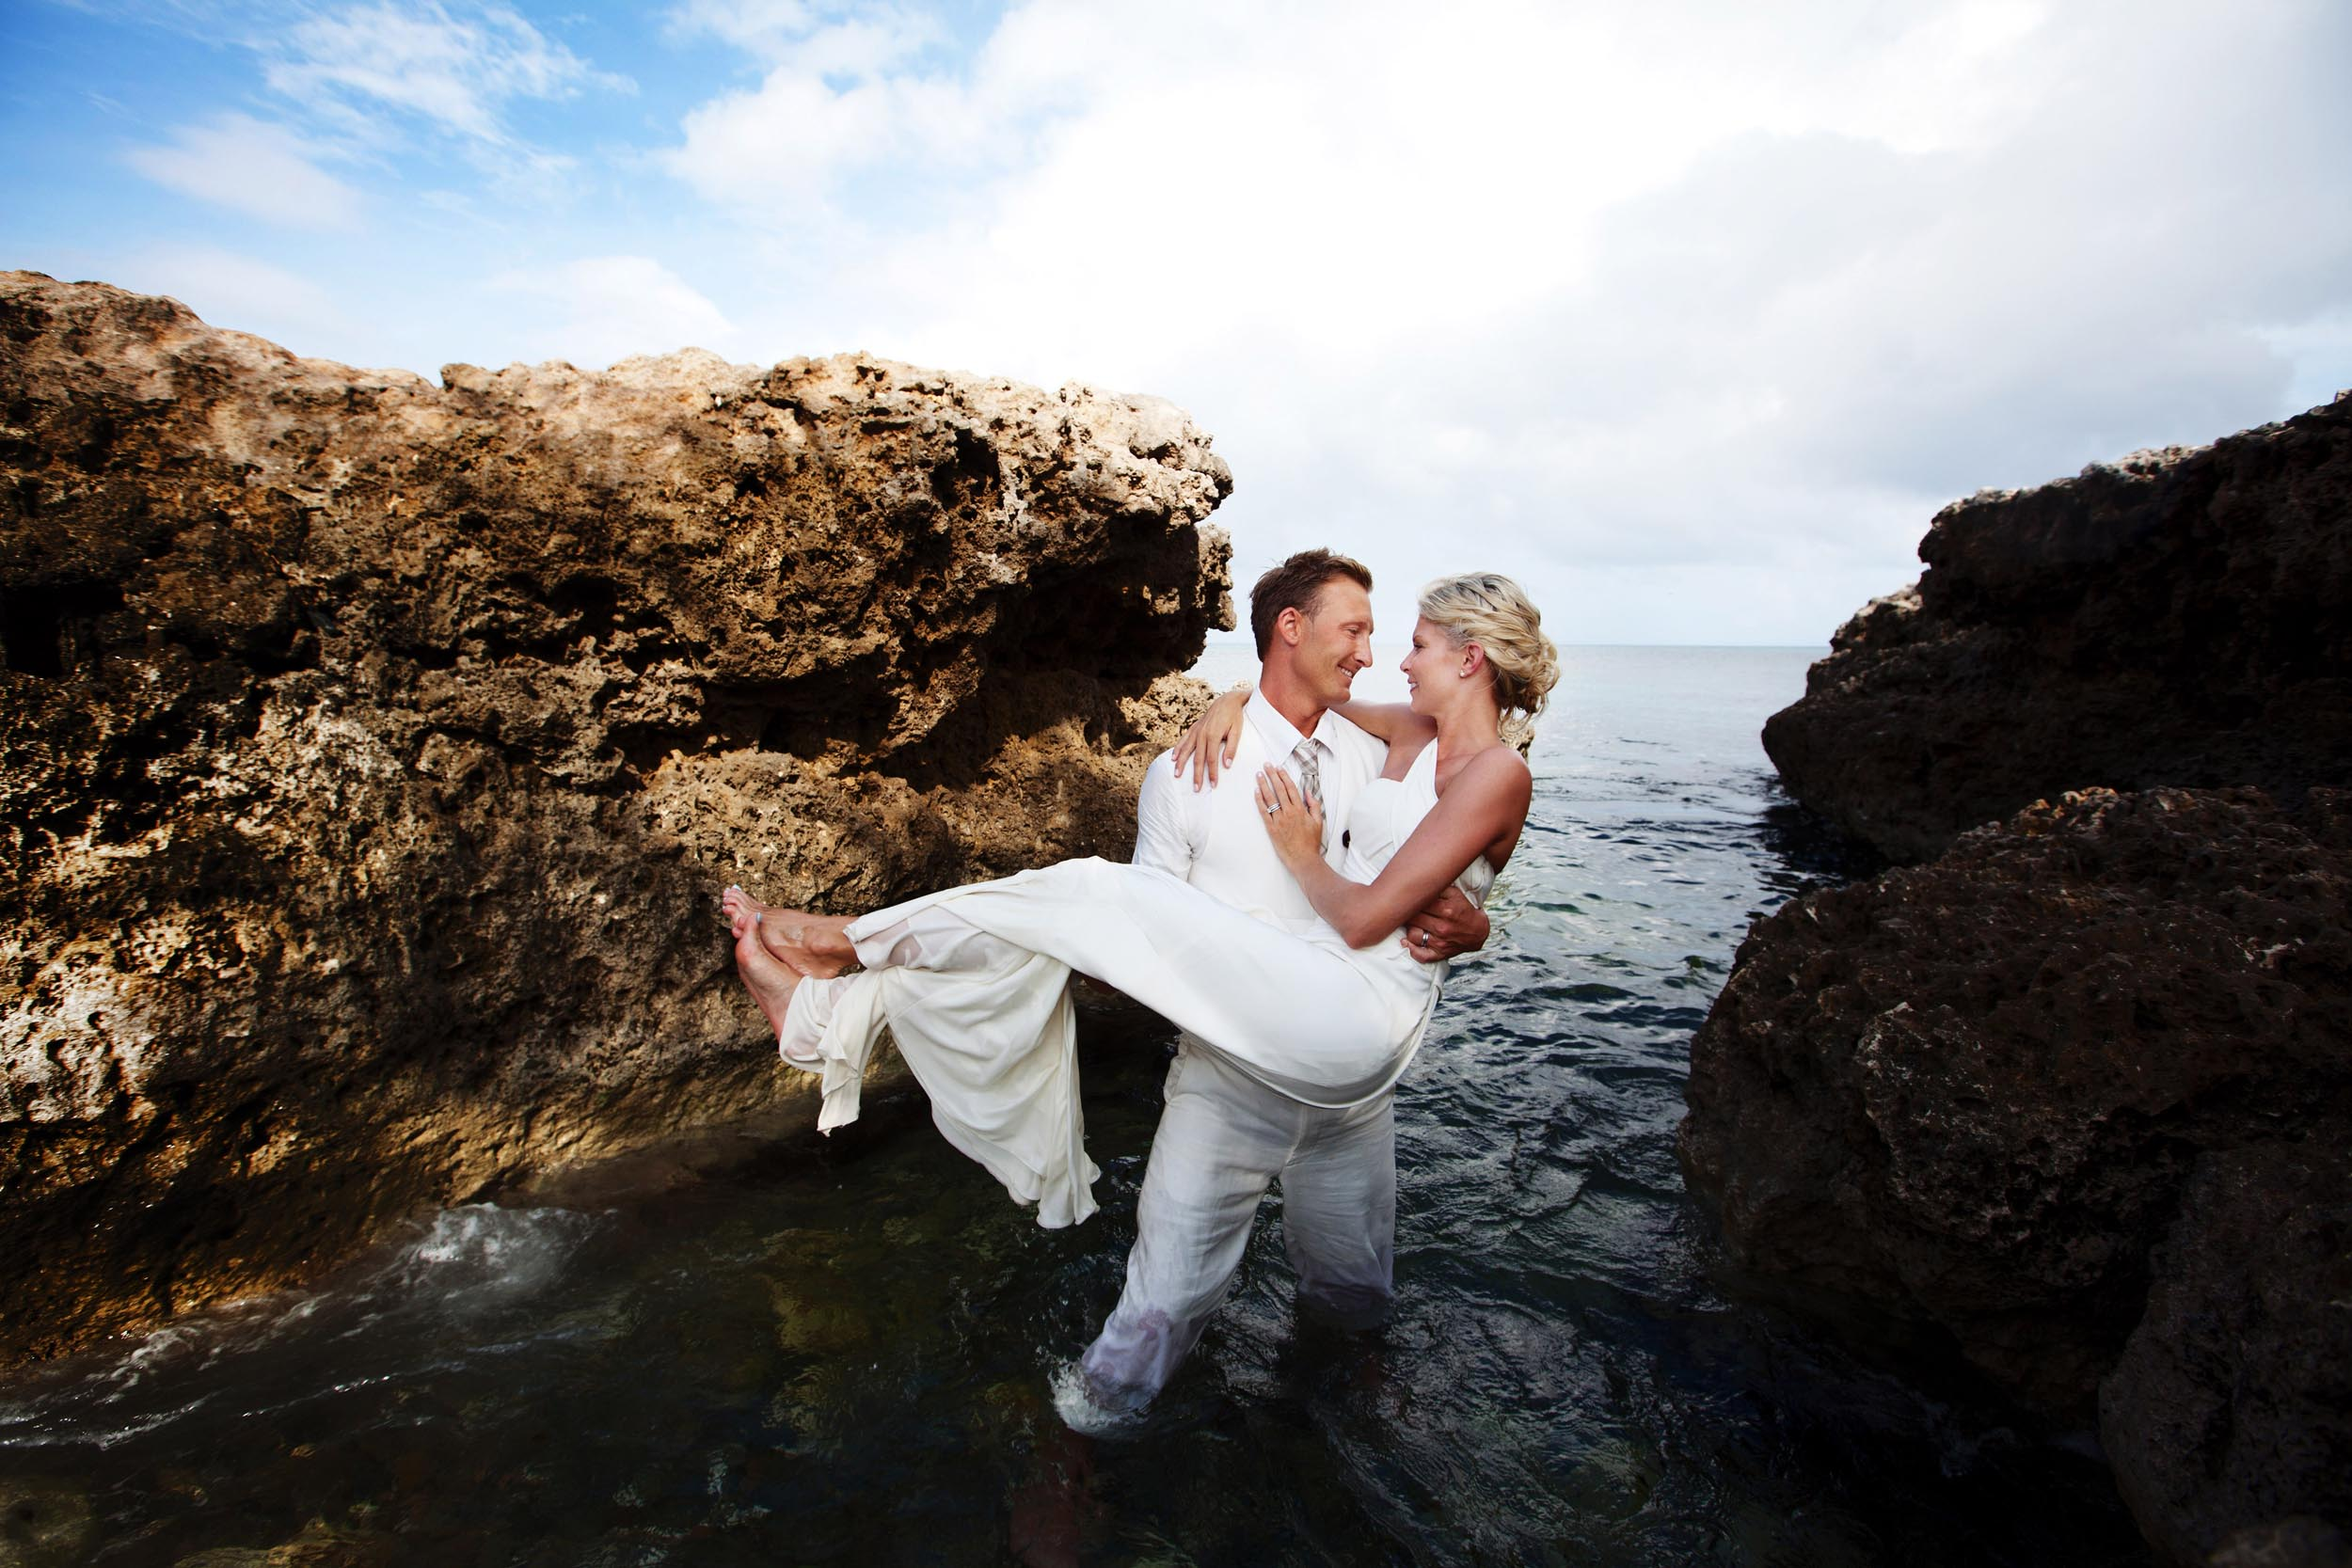 weddings-aruba-21.jpg